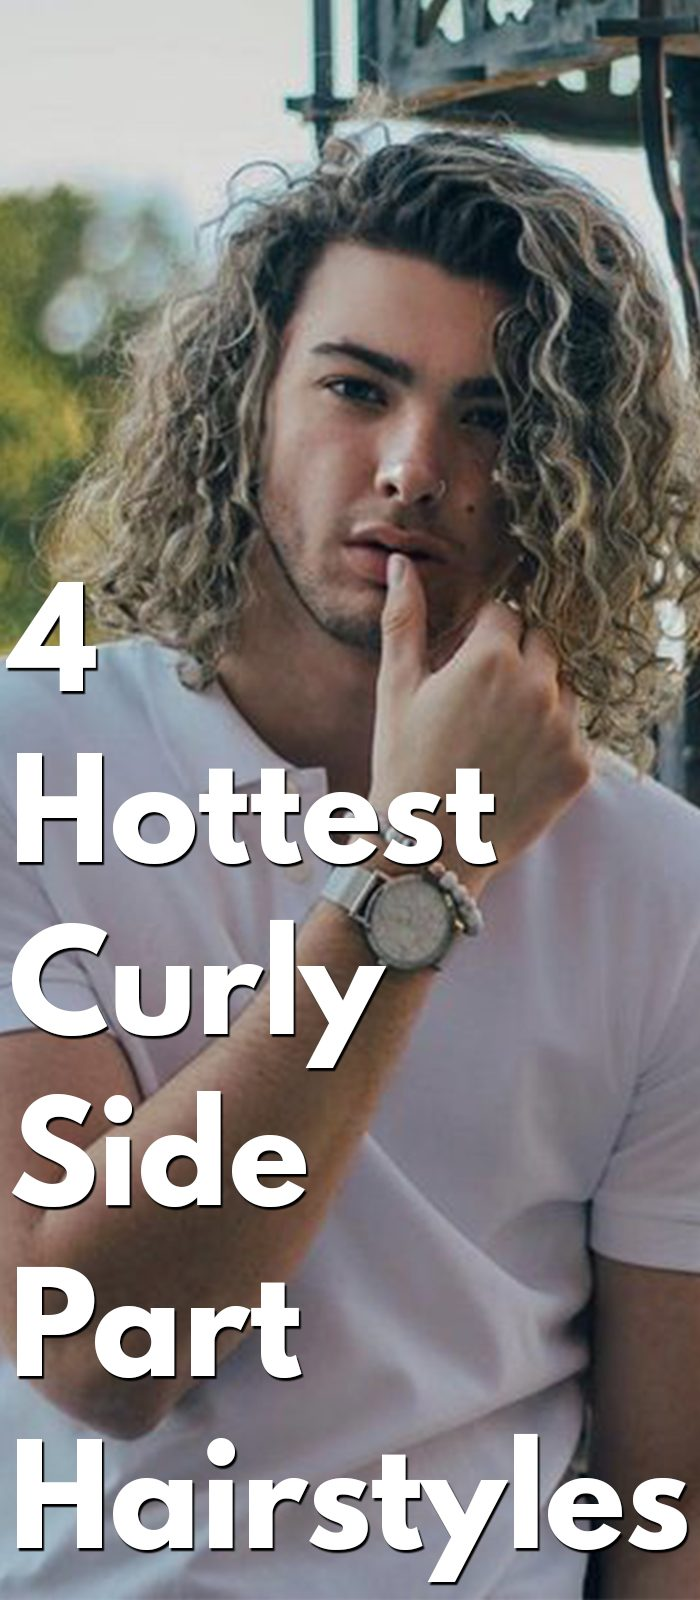 Hottest Curly Side Part Hairstyles